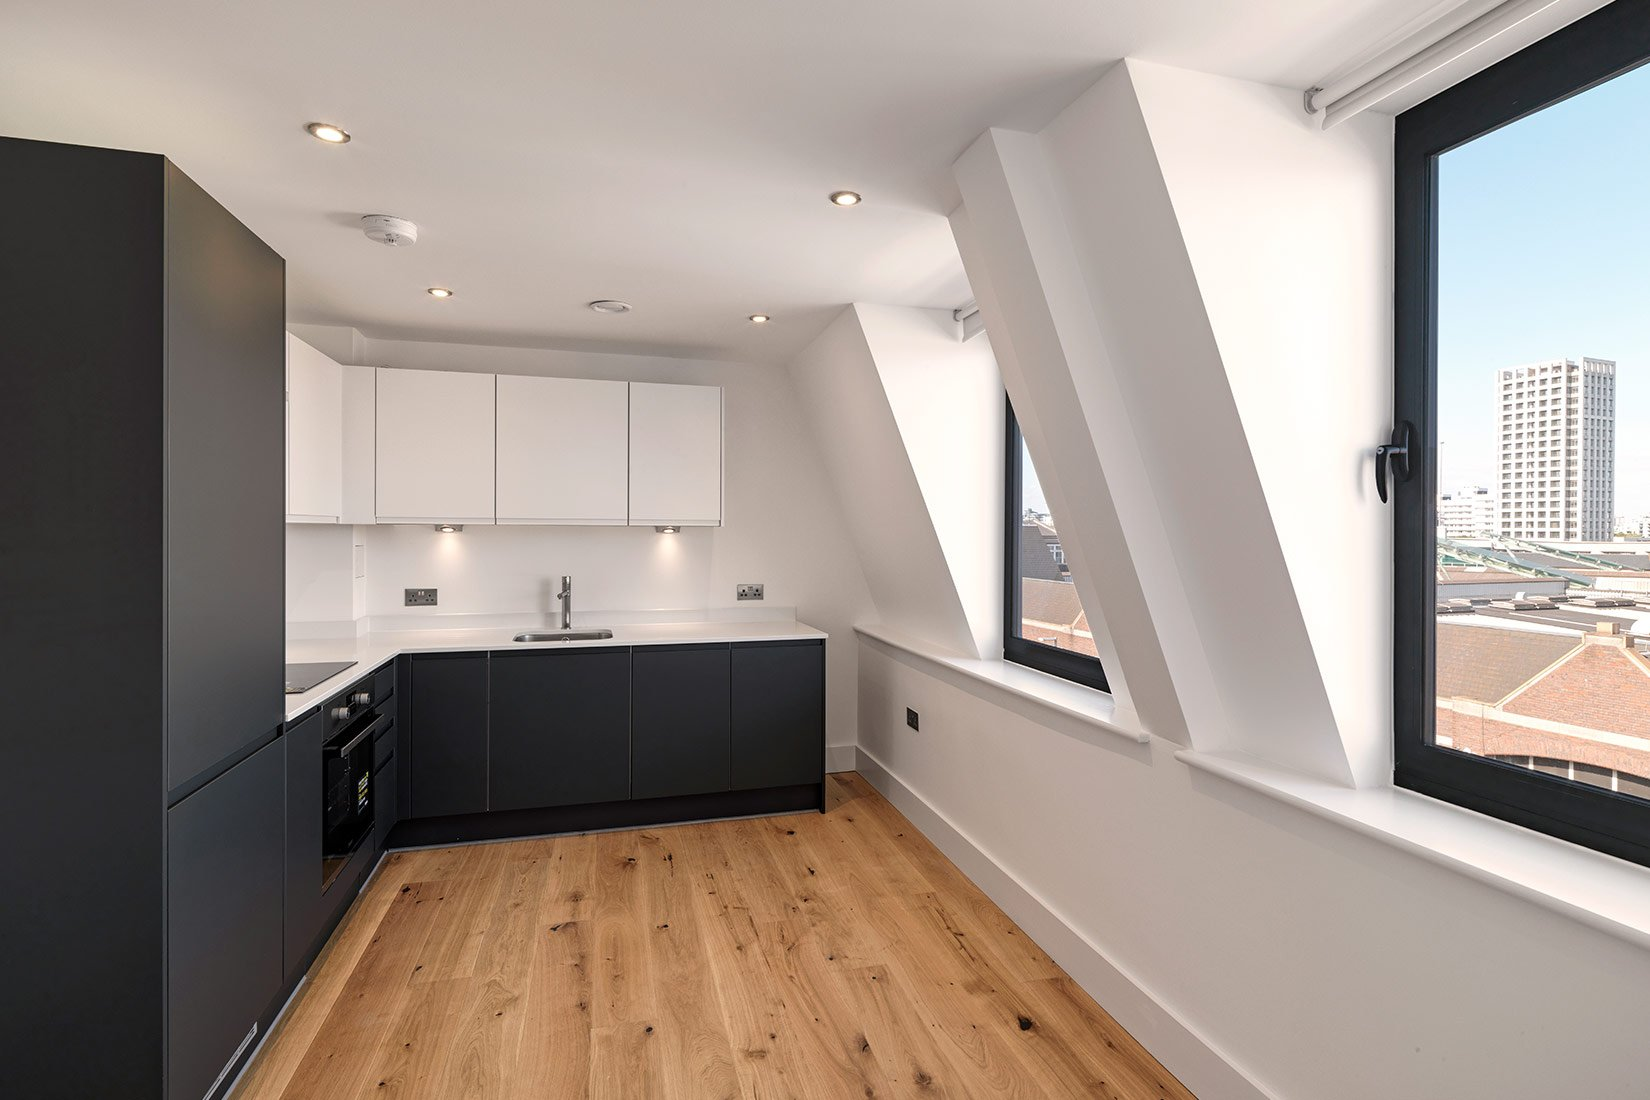 Piano Apartments, Clapham, London, Kitchen